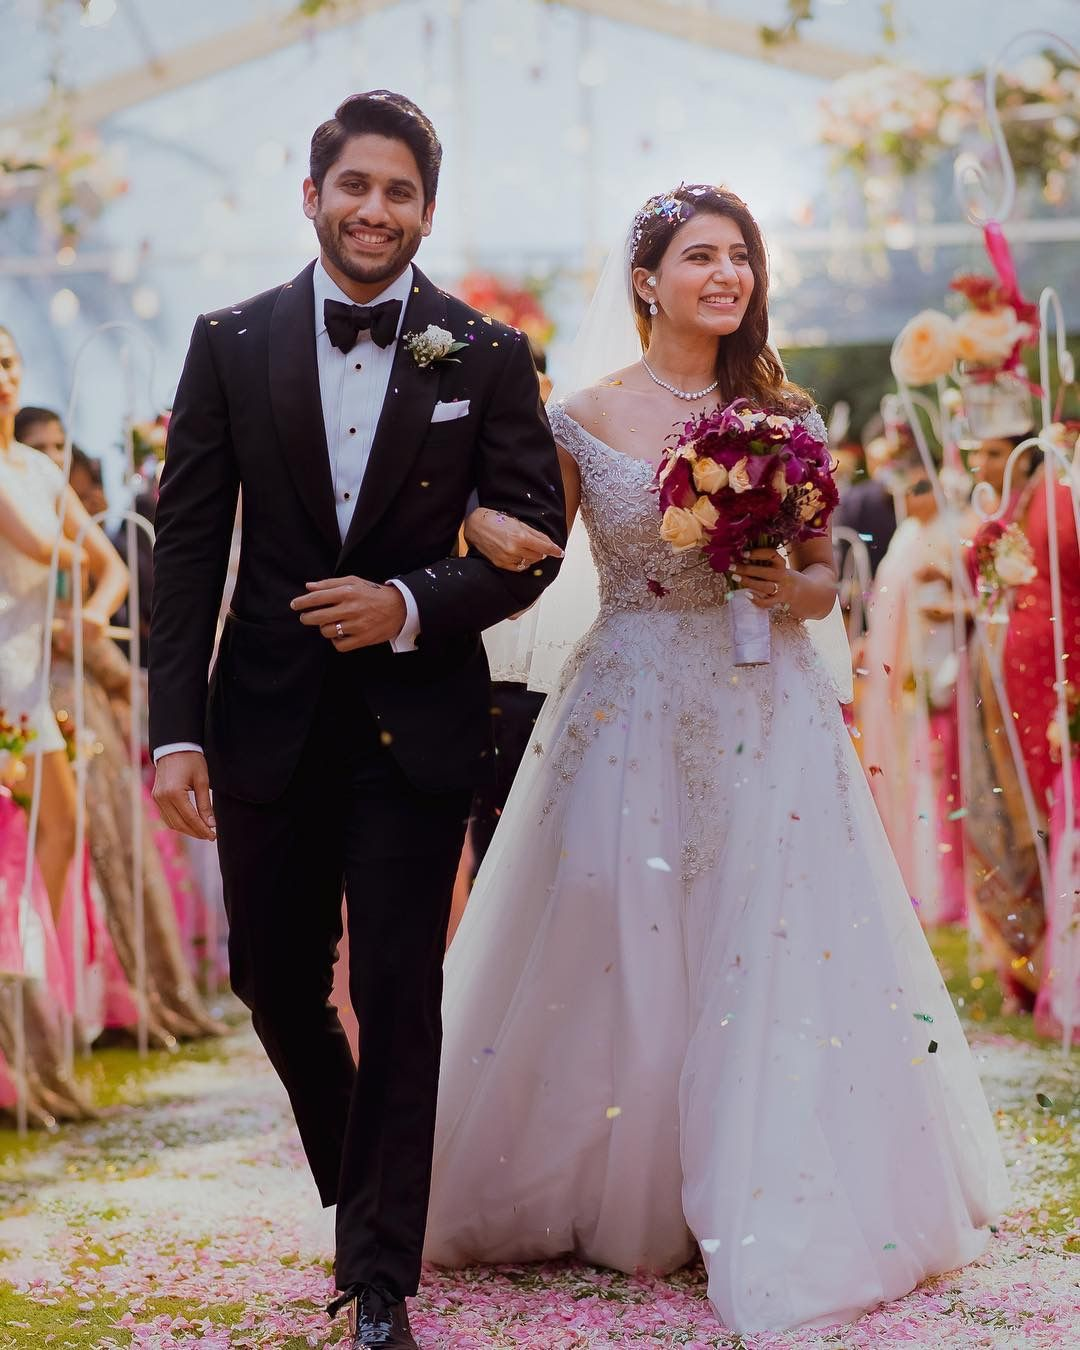 Best couple Christian wedding gowns, Marriage dress